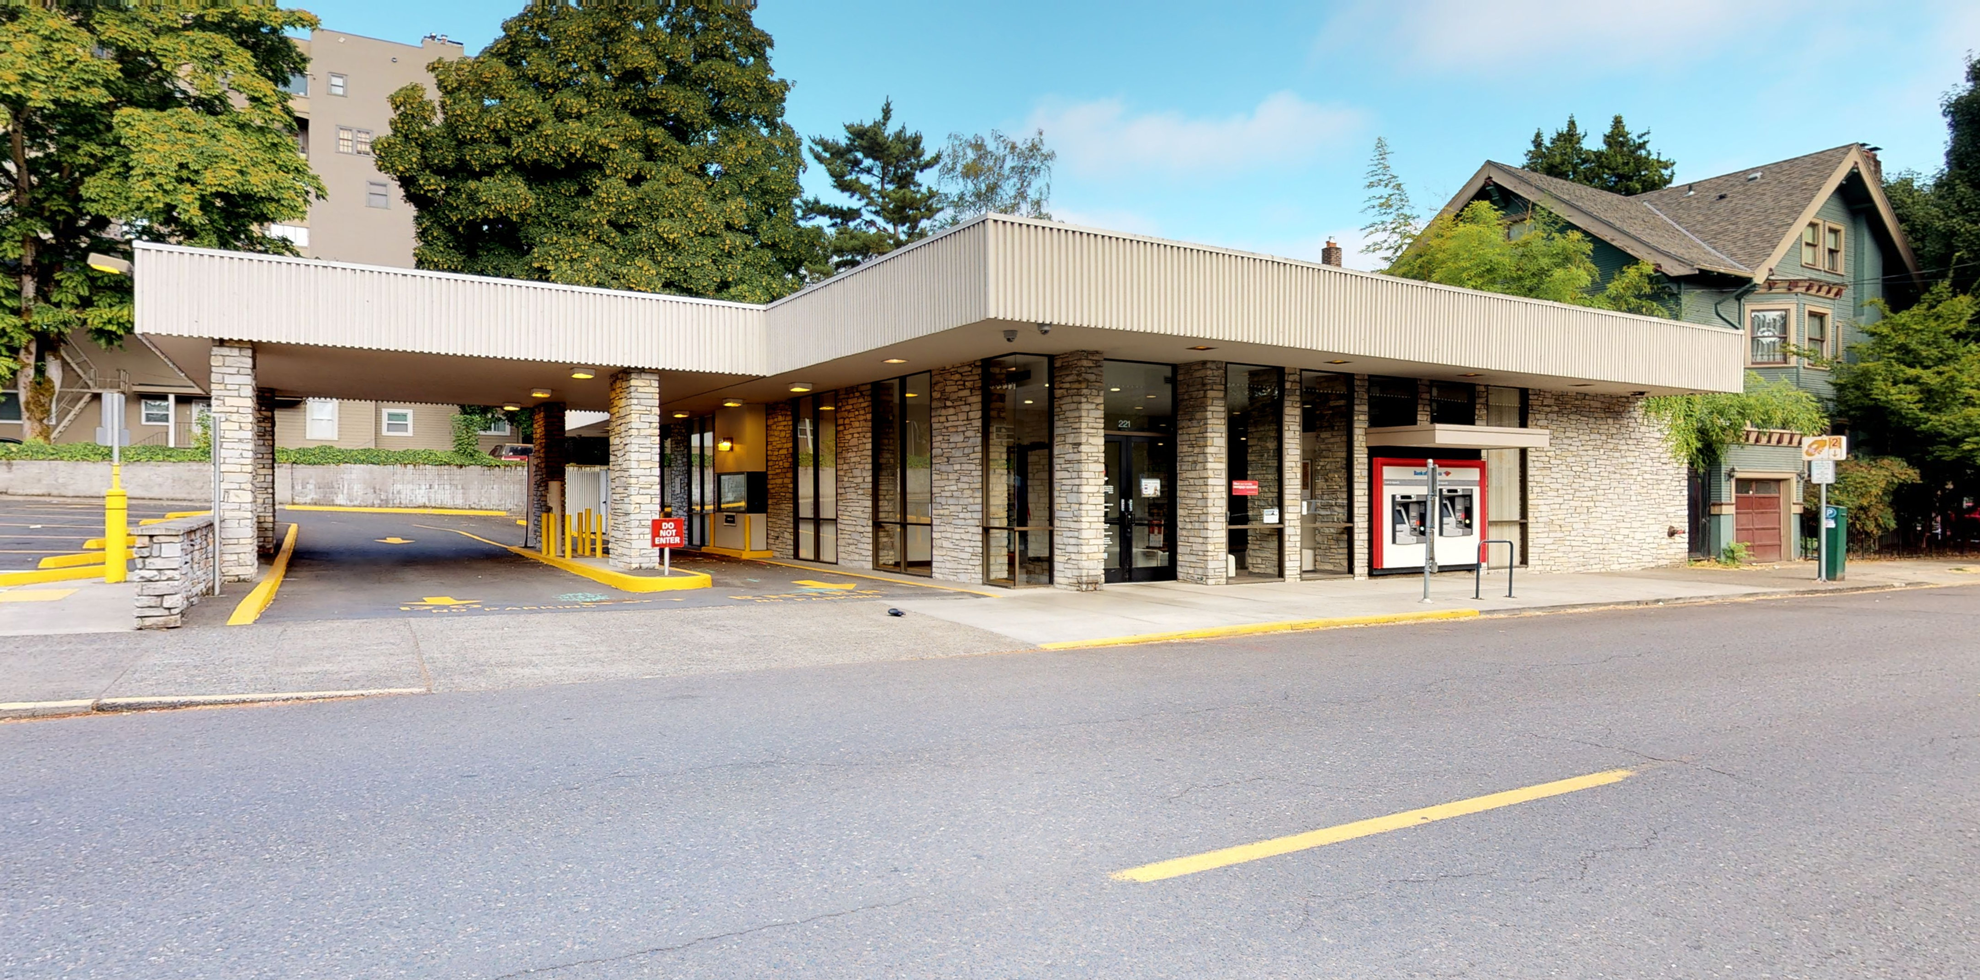 Bank of America financial center with drive-thru ATM | 221 NW 21st Ave, Portland, OR 97209